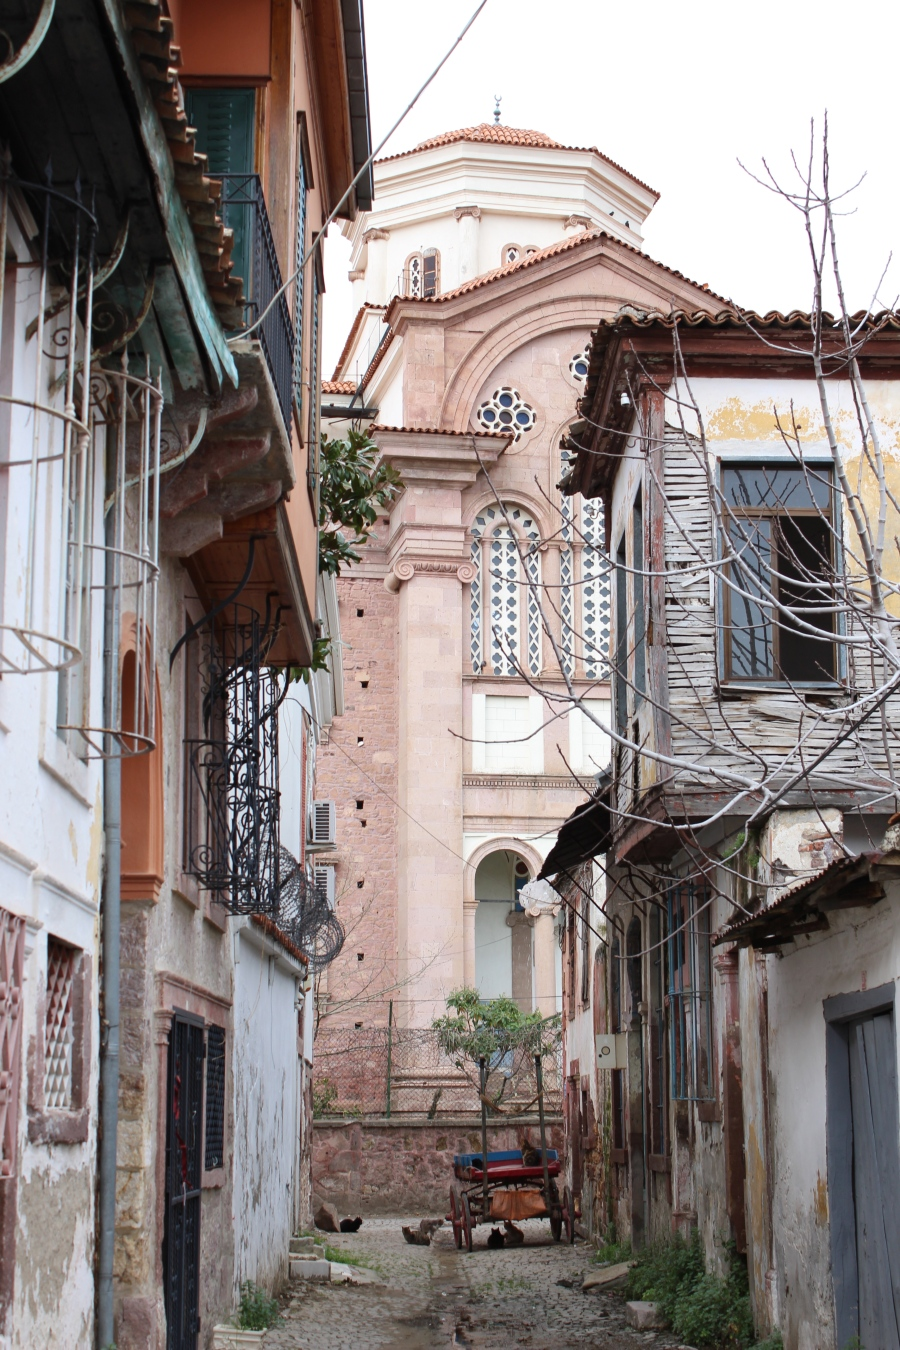 The neighborhood surrounding a church in Ayvalik.